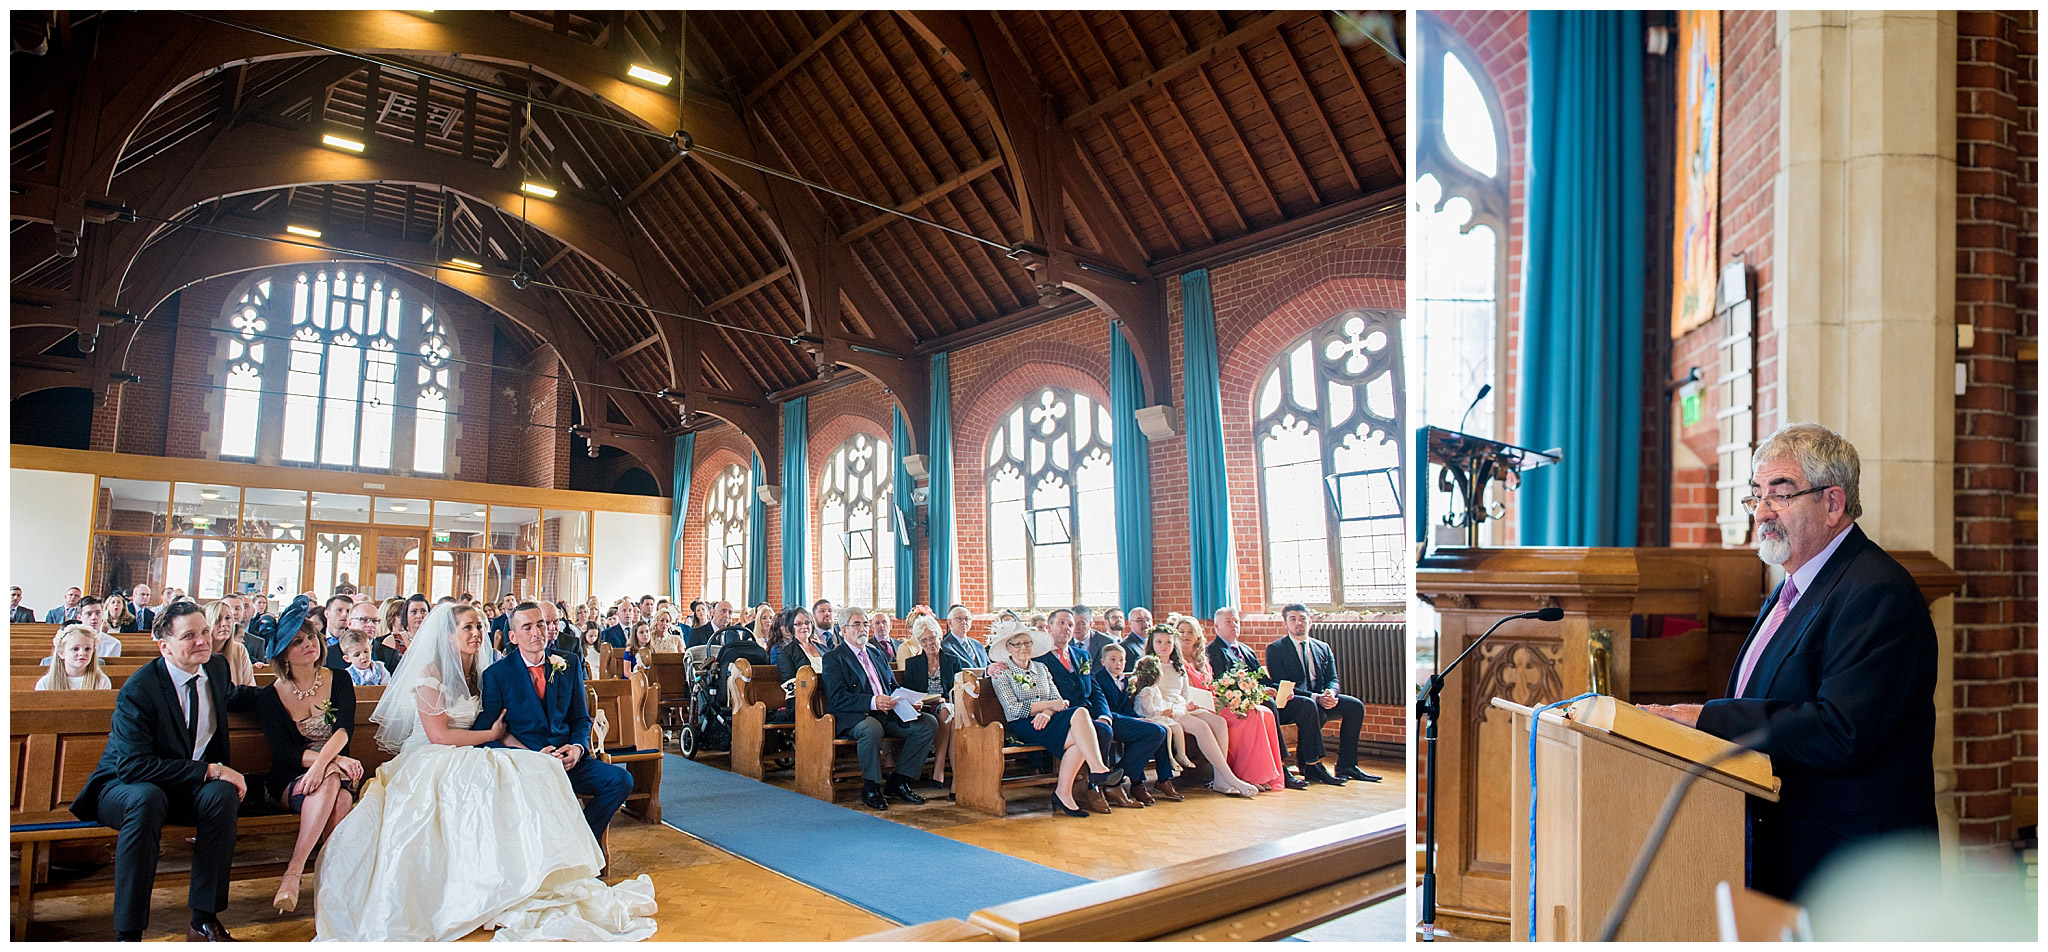 Katie-&-Steve-Victoria-Park-Methodist-Chruch-Winton-&-The-Manor-Burton-Christchurch-Wedding-23